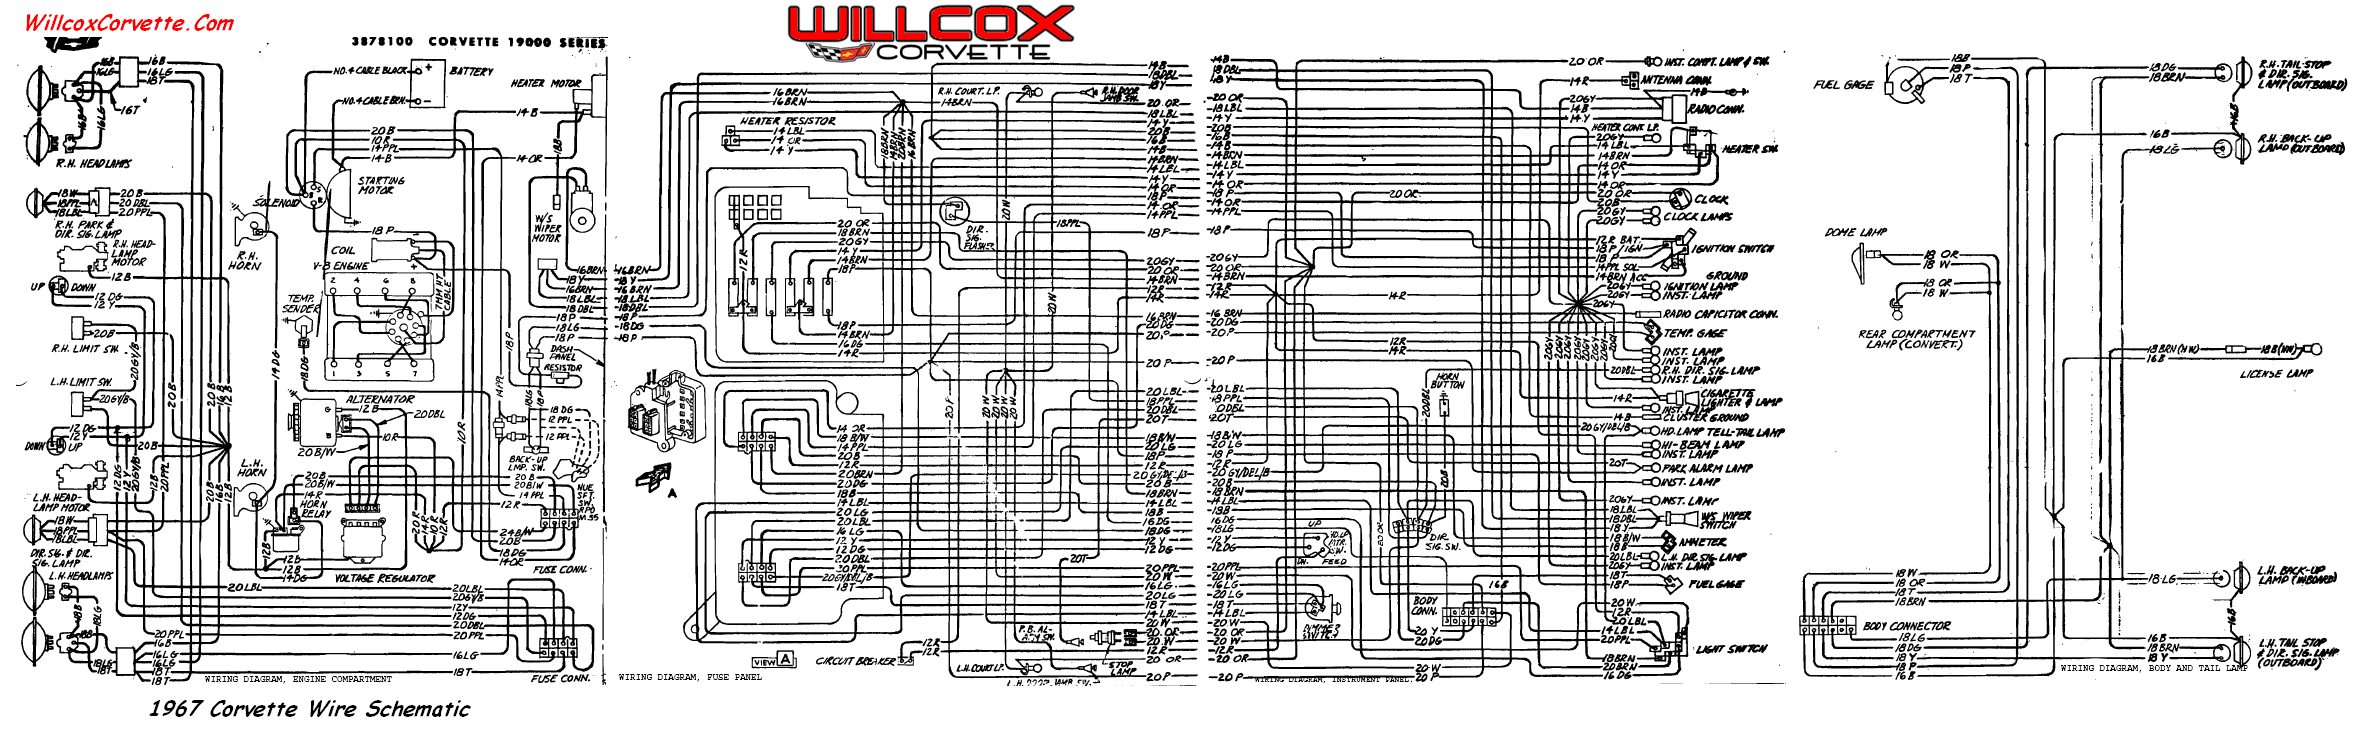 67 wire schematic for tracing wires c3 corvette wiring diagram radio wiring diagram \u2022 wiring diagrams Headlight Relay Harness Schematic at gsmx.co